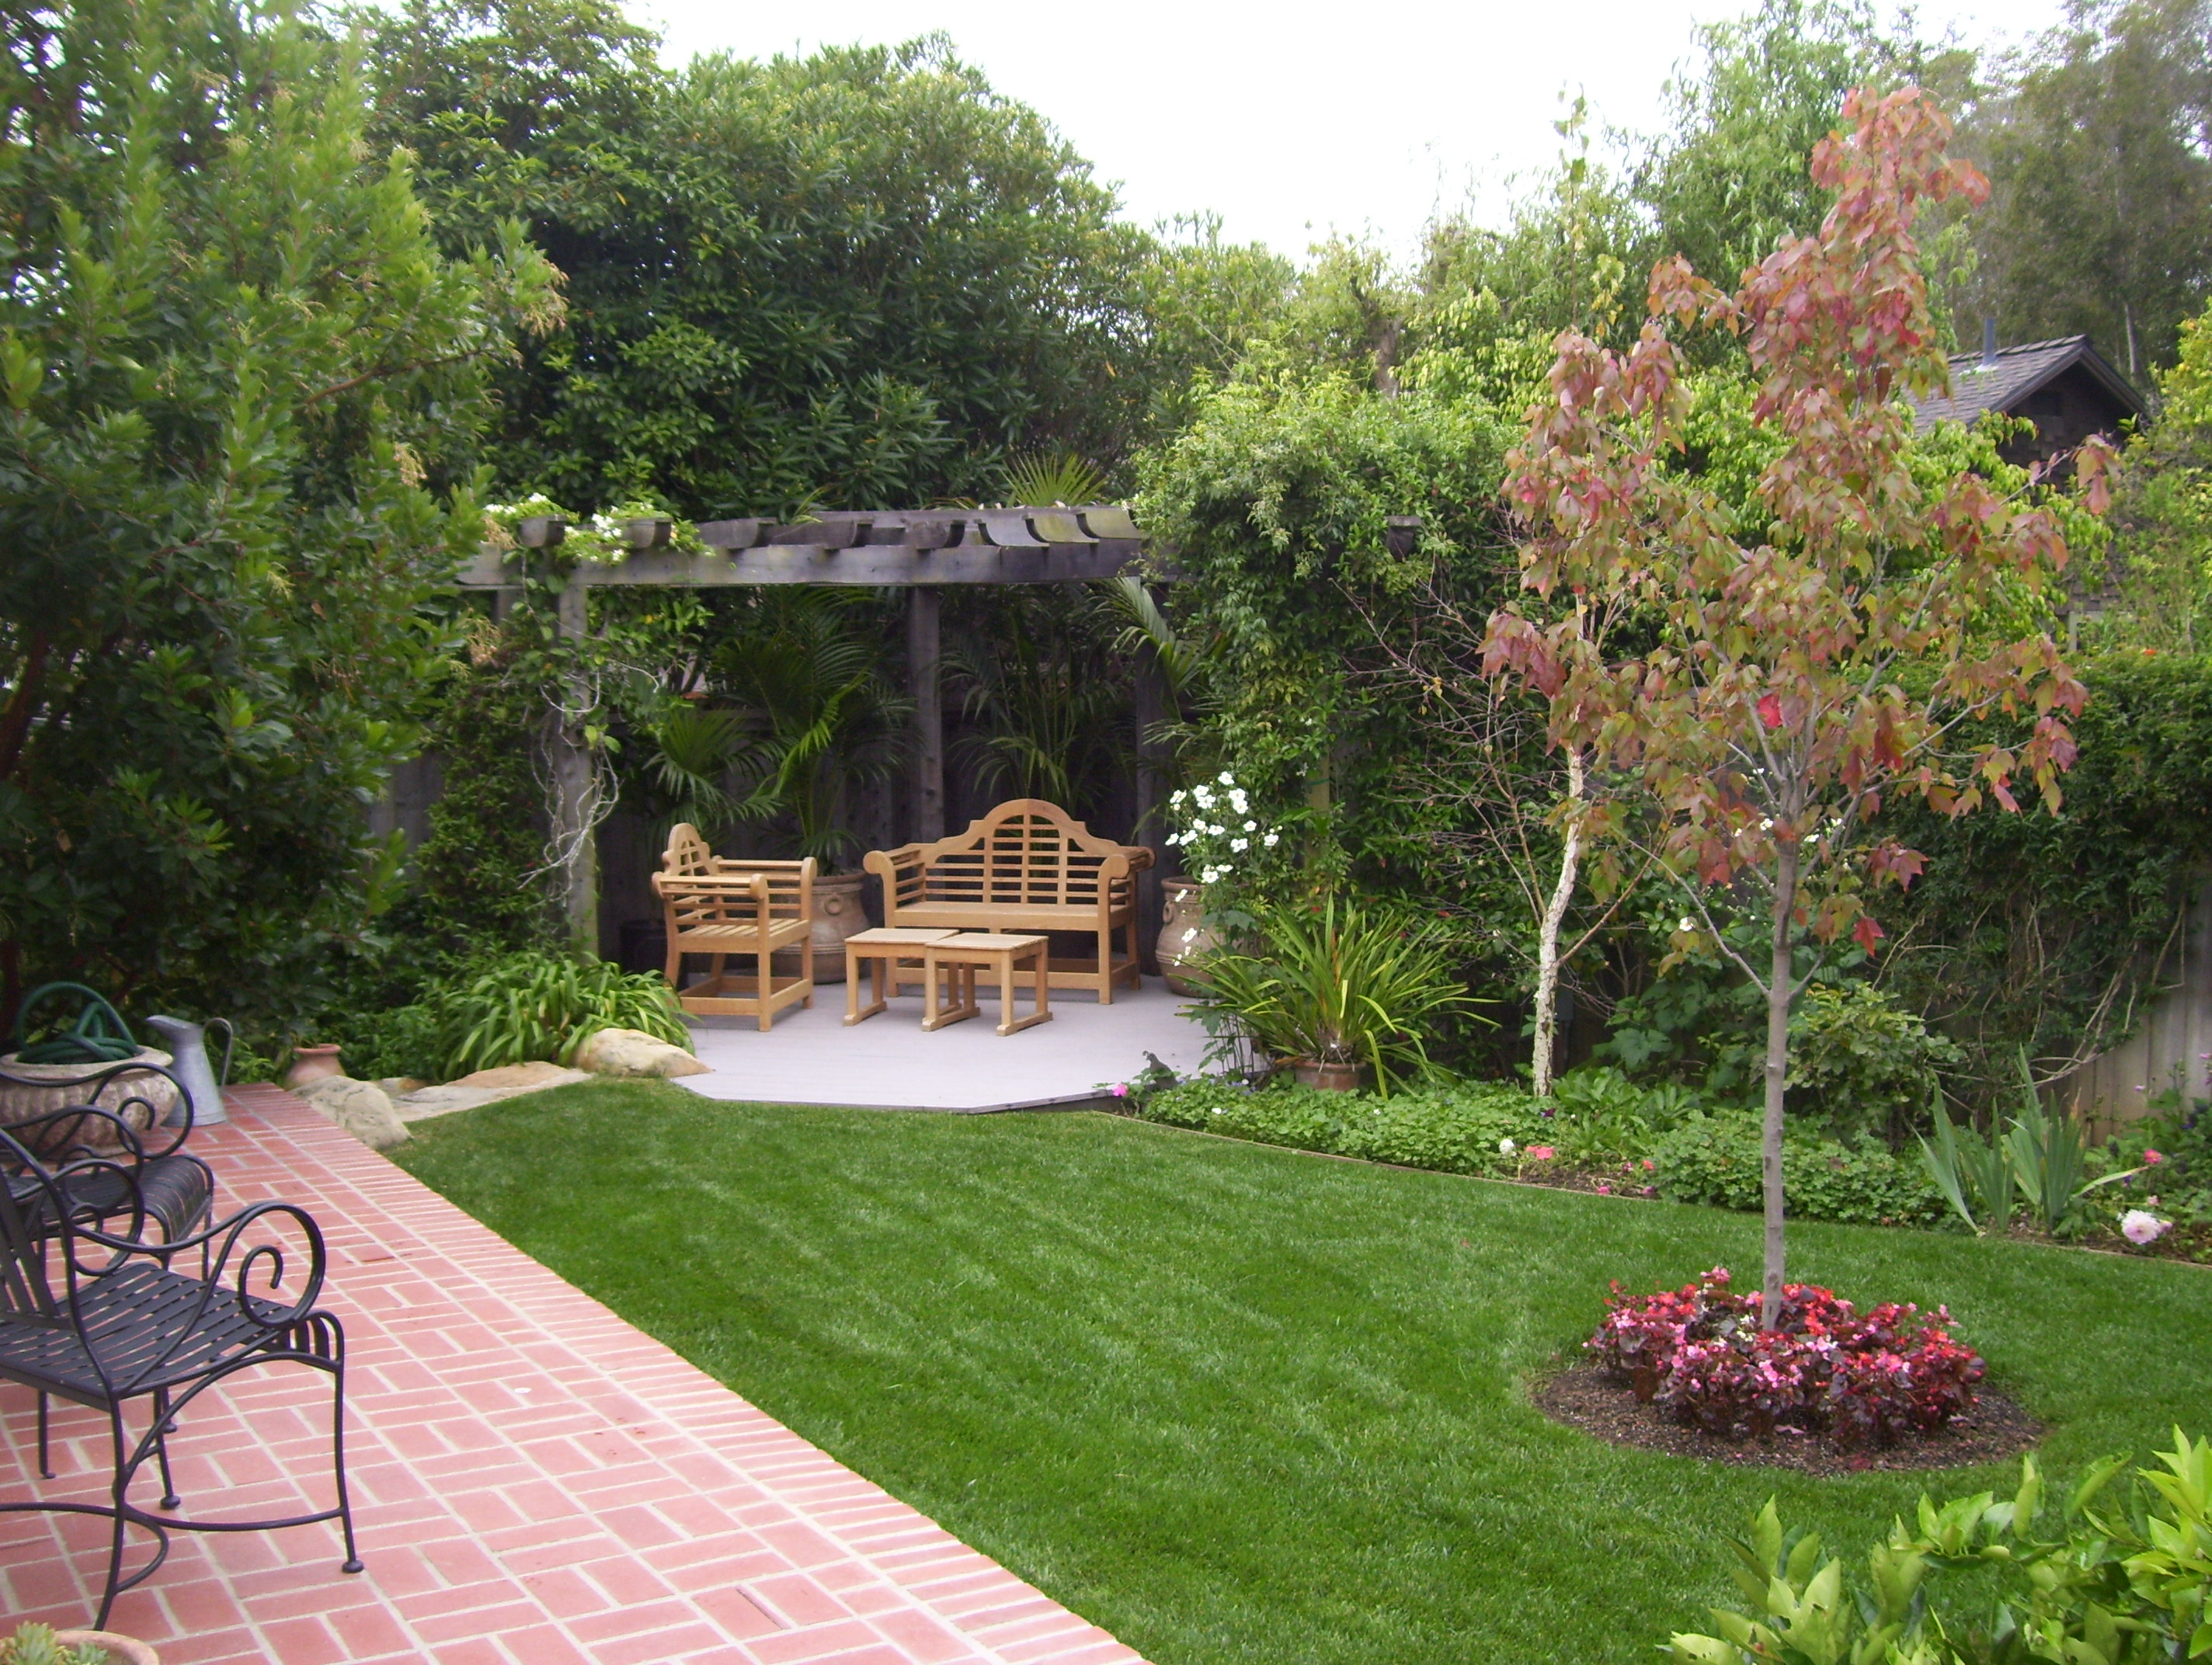 Backyard landscaping ideas santa barbara down to earth for Outdoor landscaping ideas